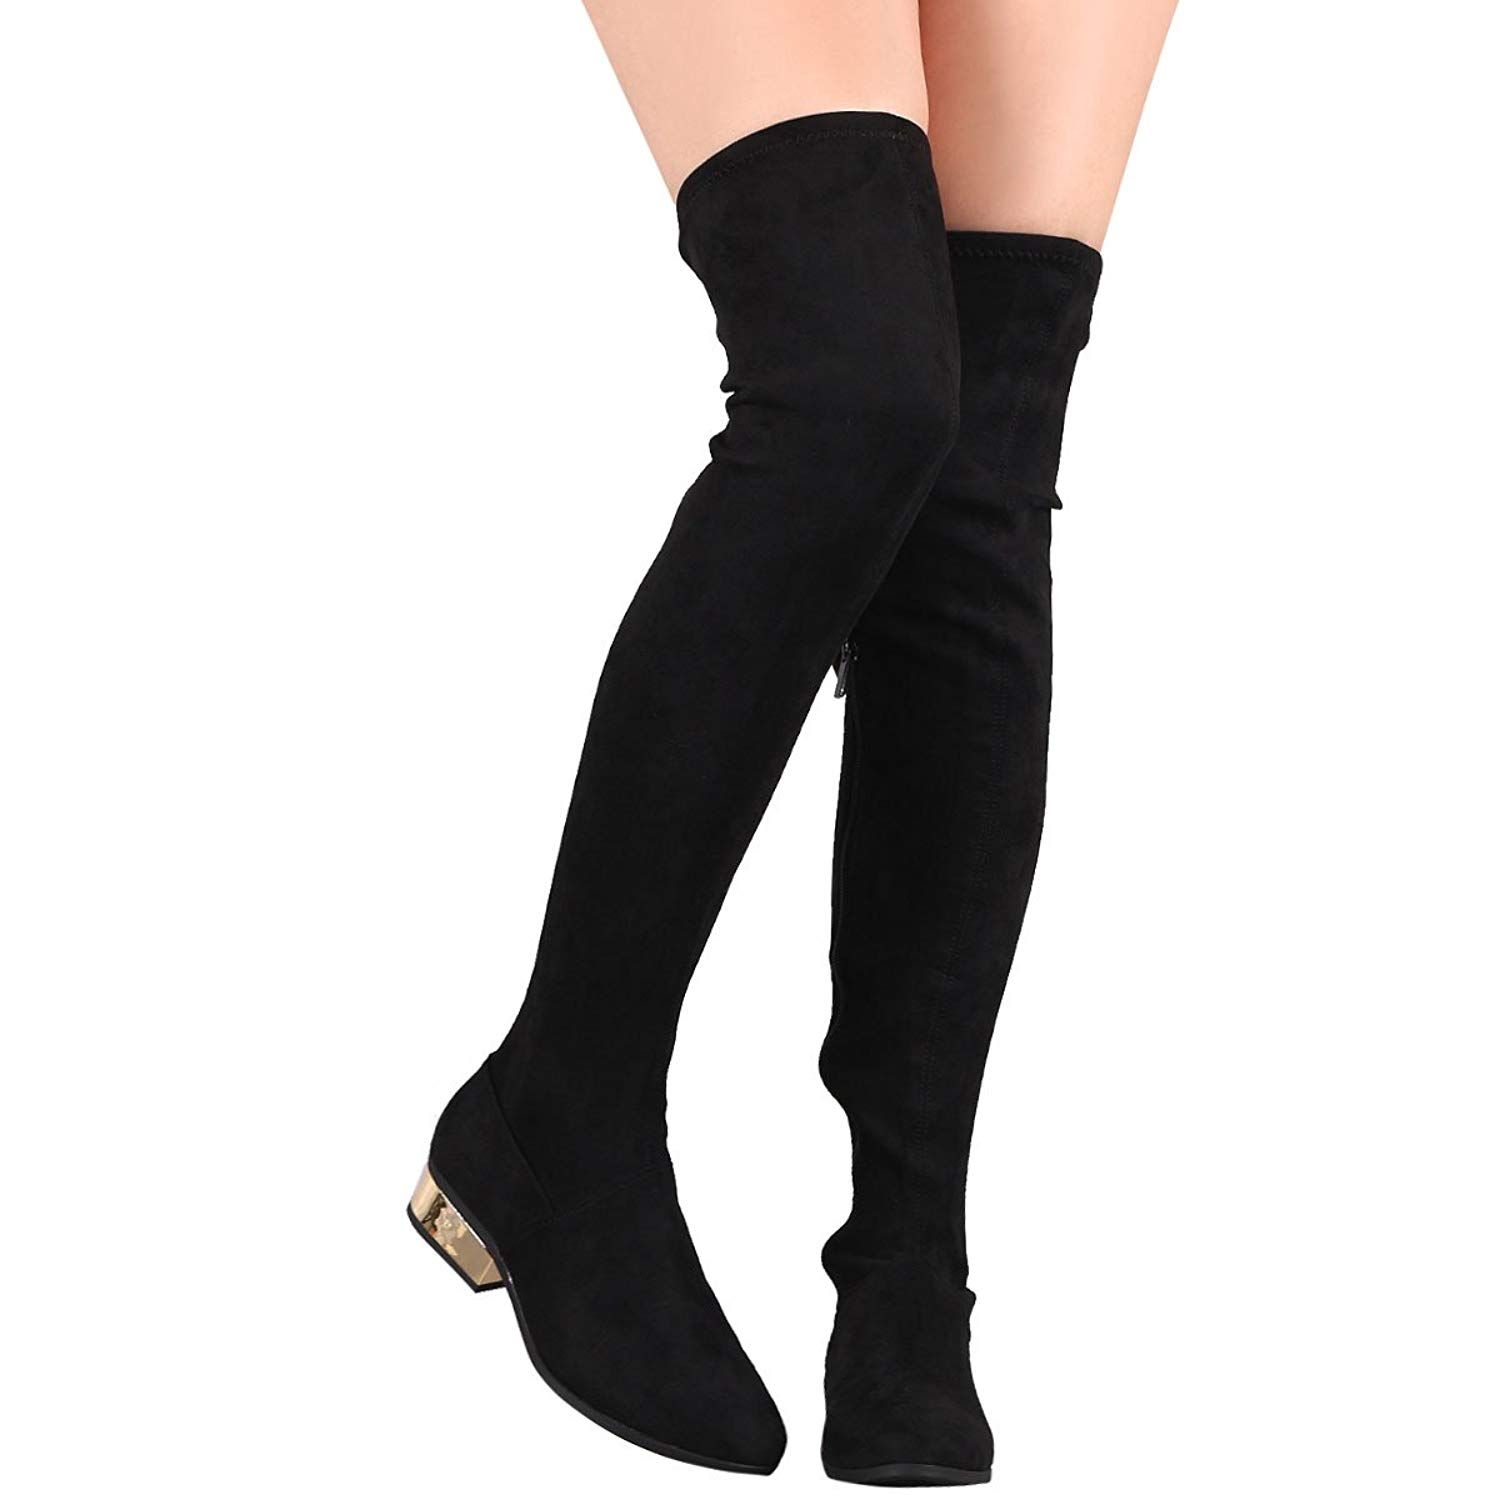 e797c6940 Bamboo Womens Closed Almond Toe Stretch Fitted Vegan Suede Over The Knee  High Low Block Heel